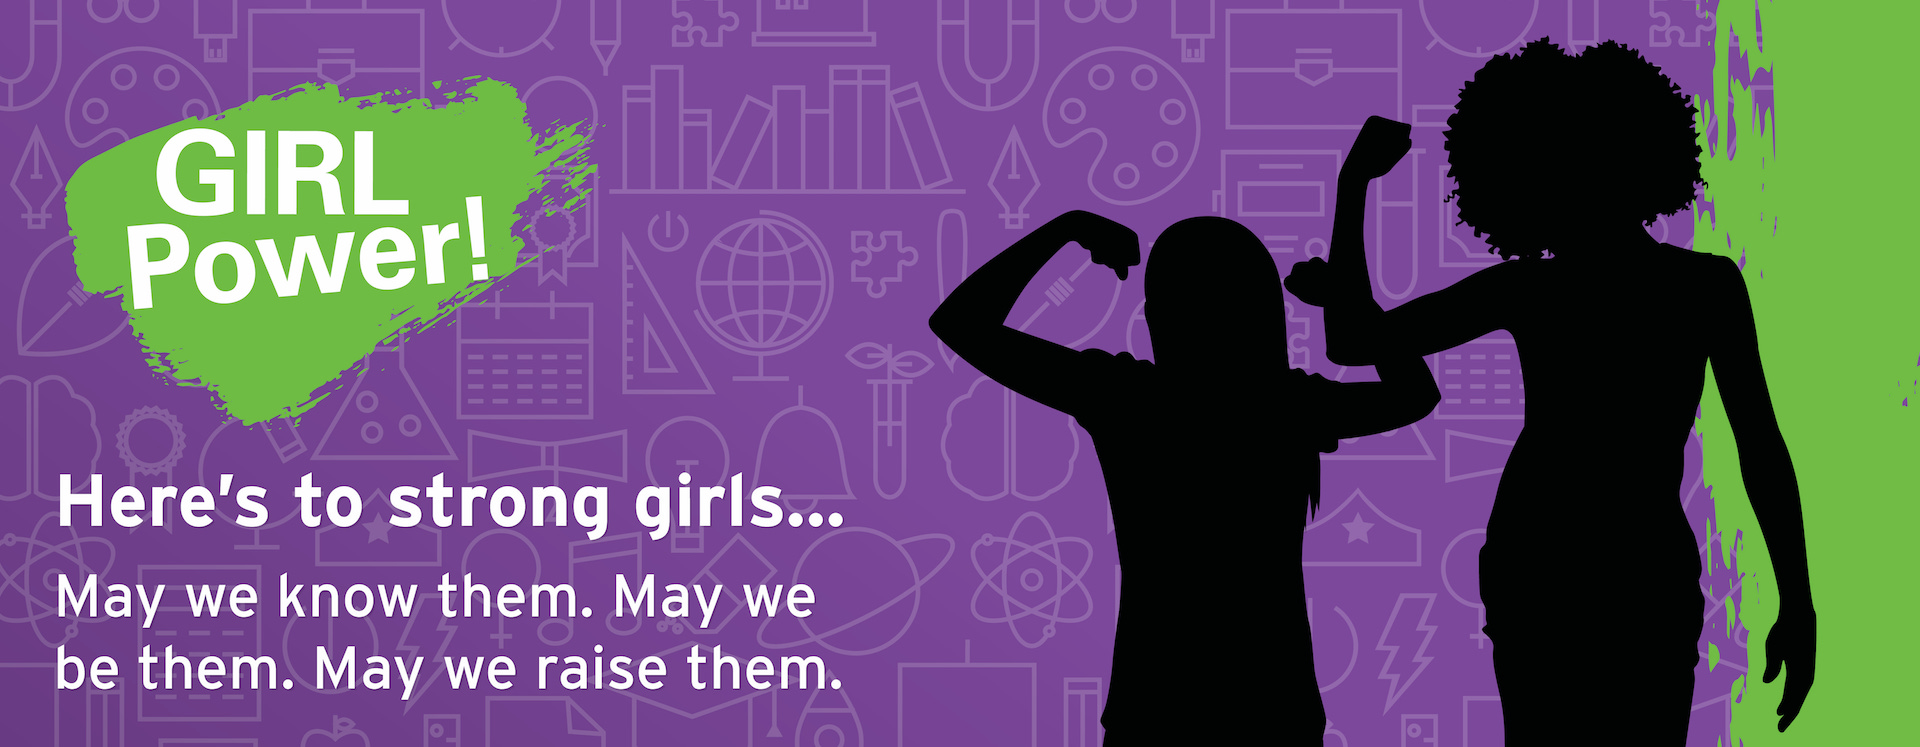 GIRL Power! Here's to strong girls